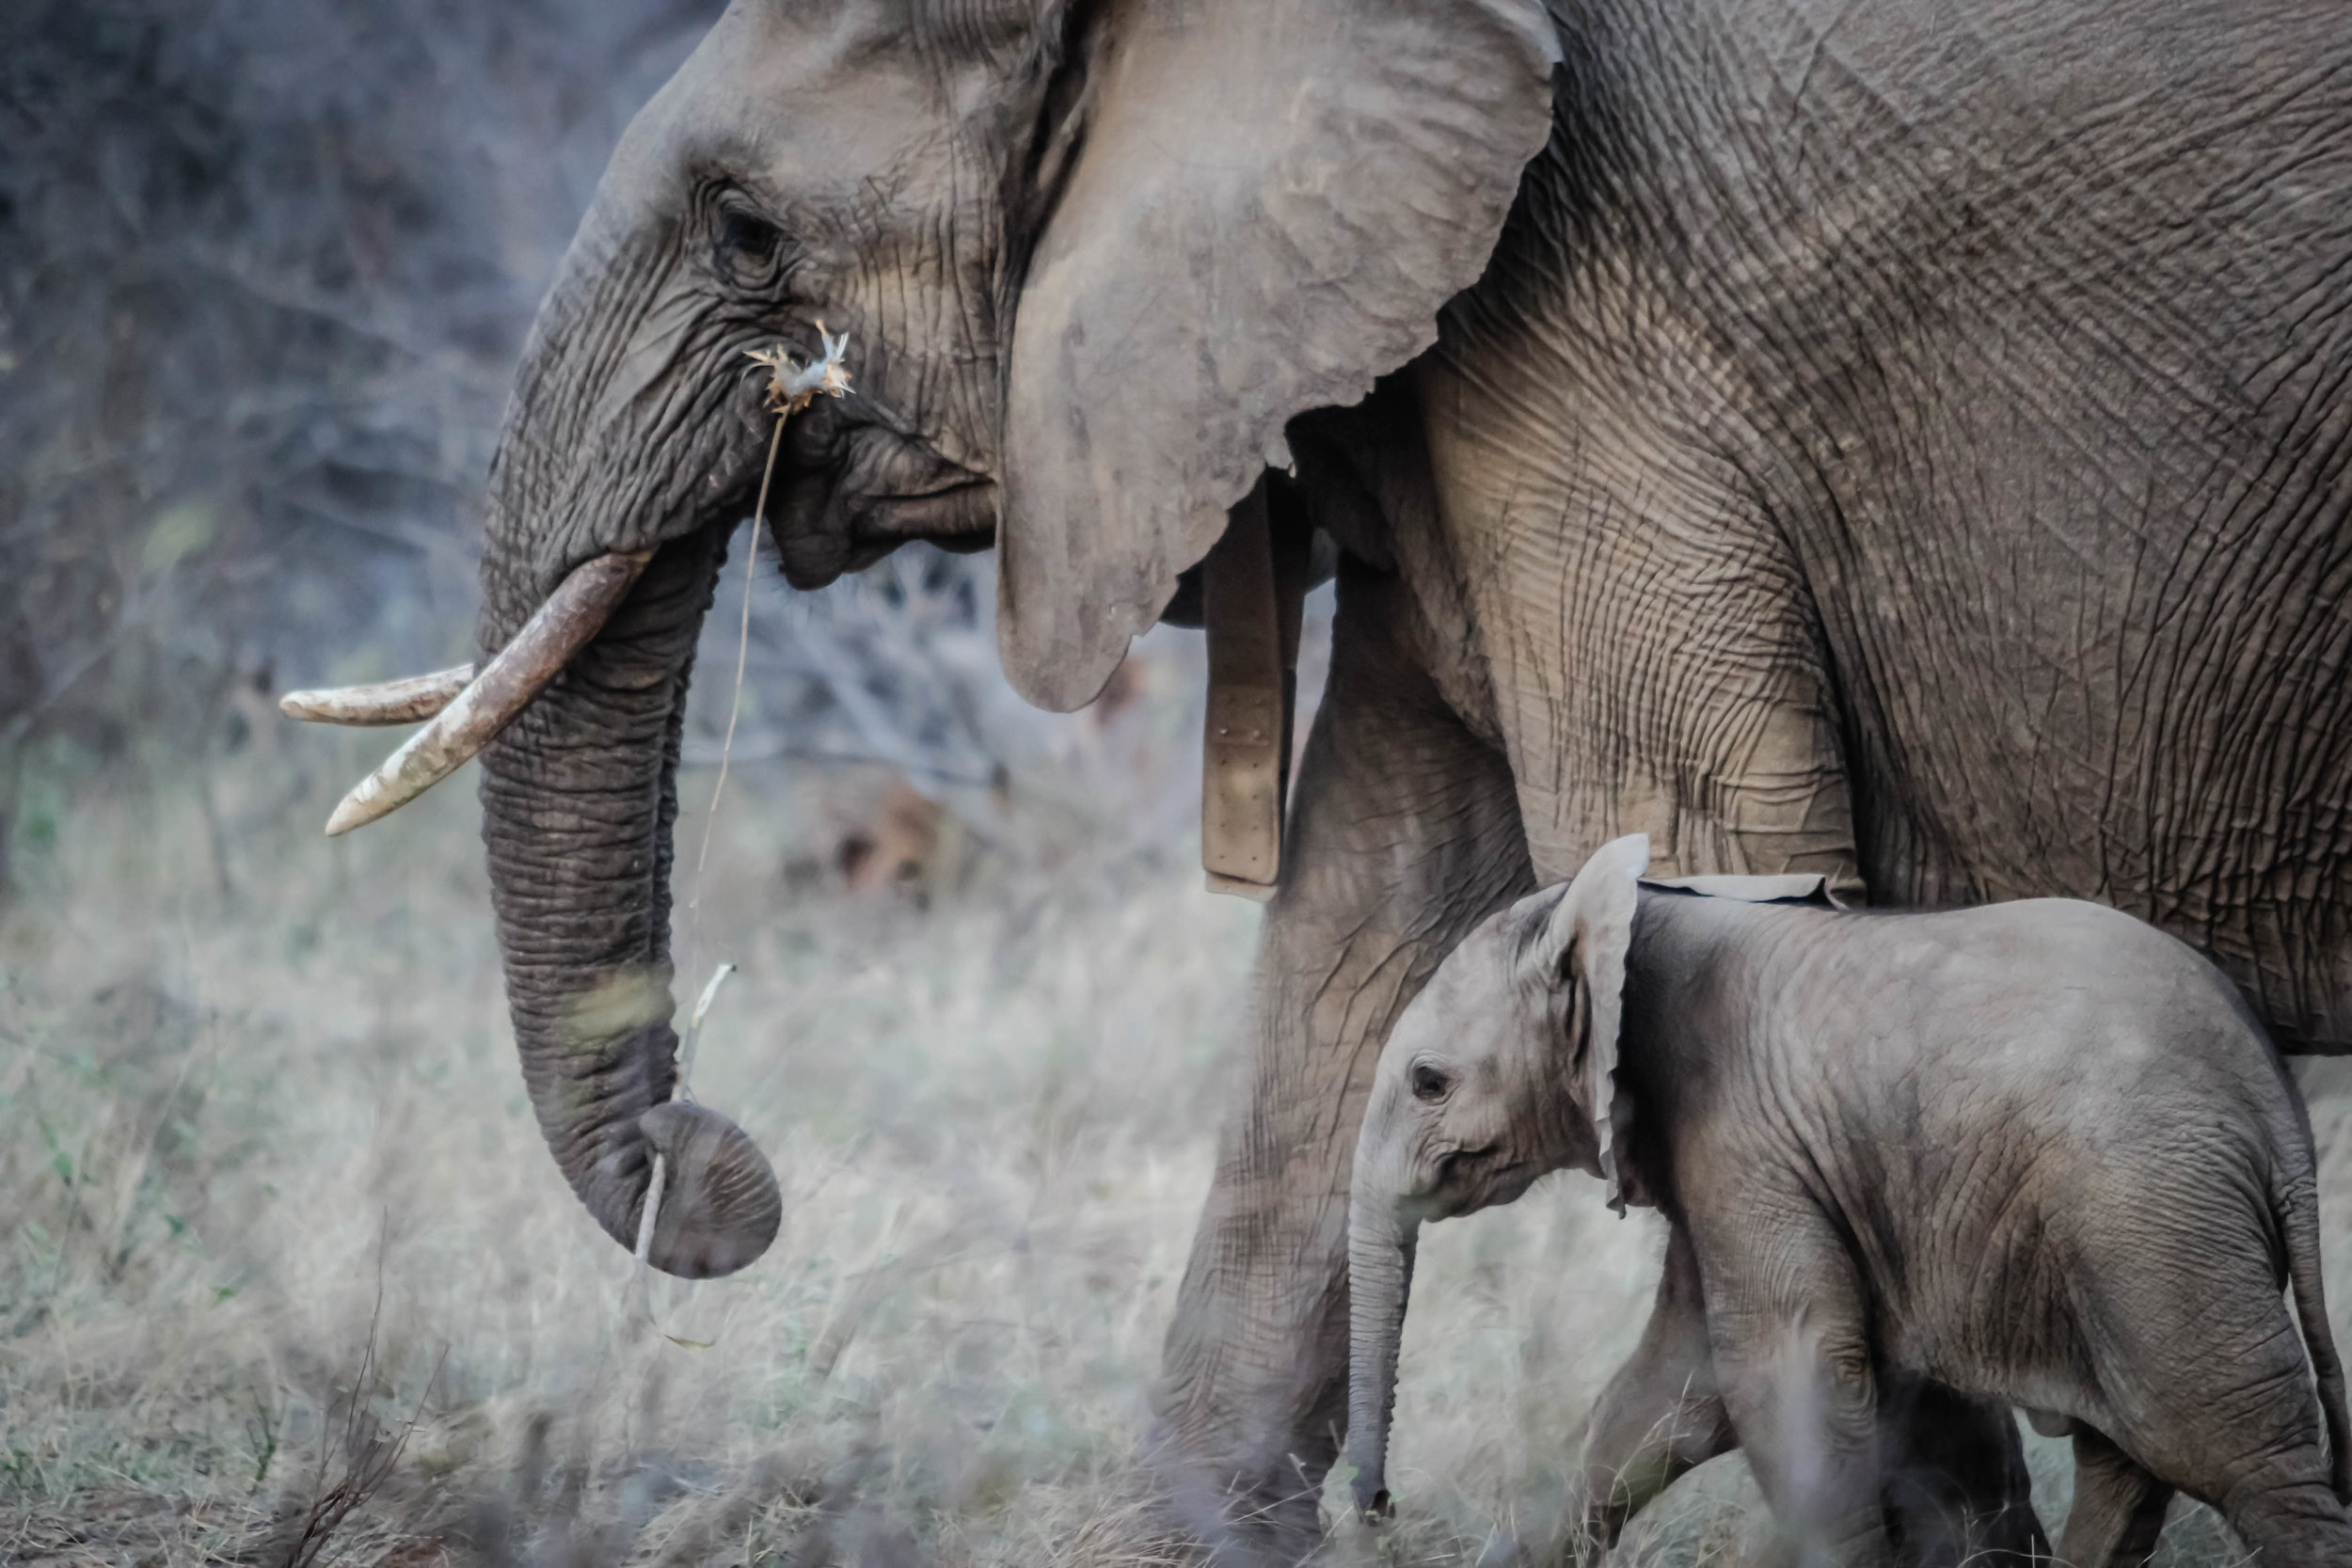 Getting the attention of big, slow corporations can be likened to catching an elephant by its tail.